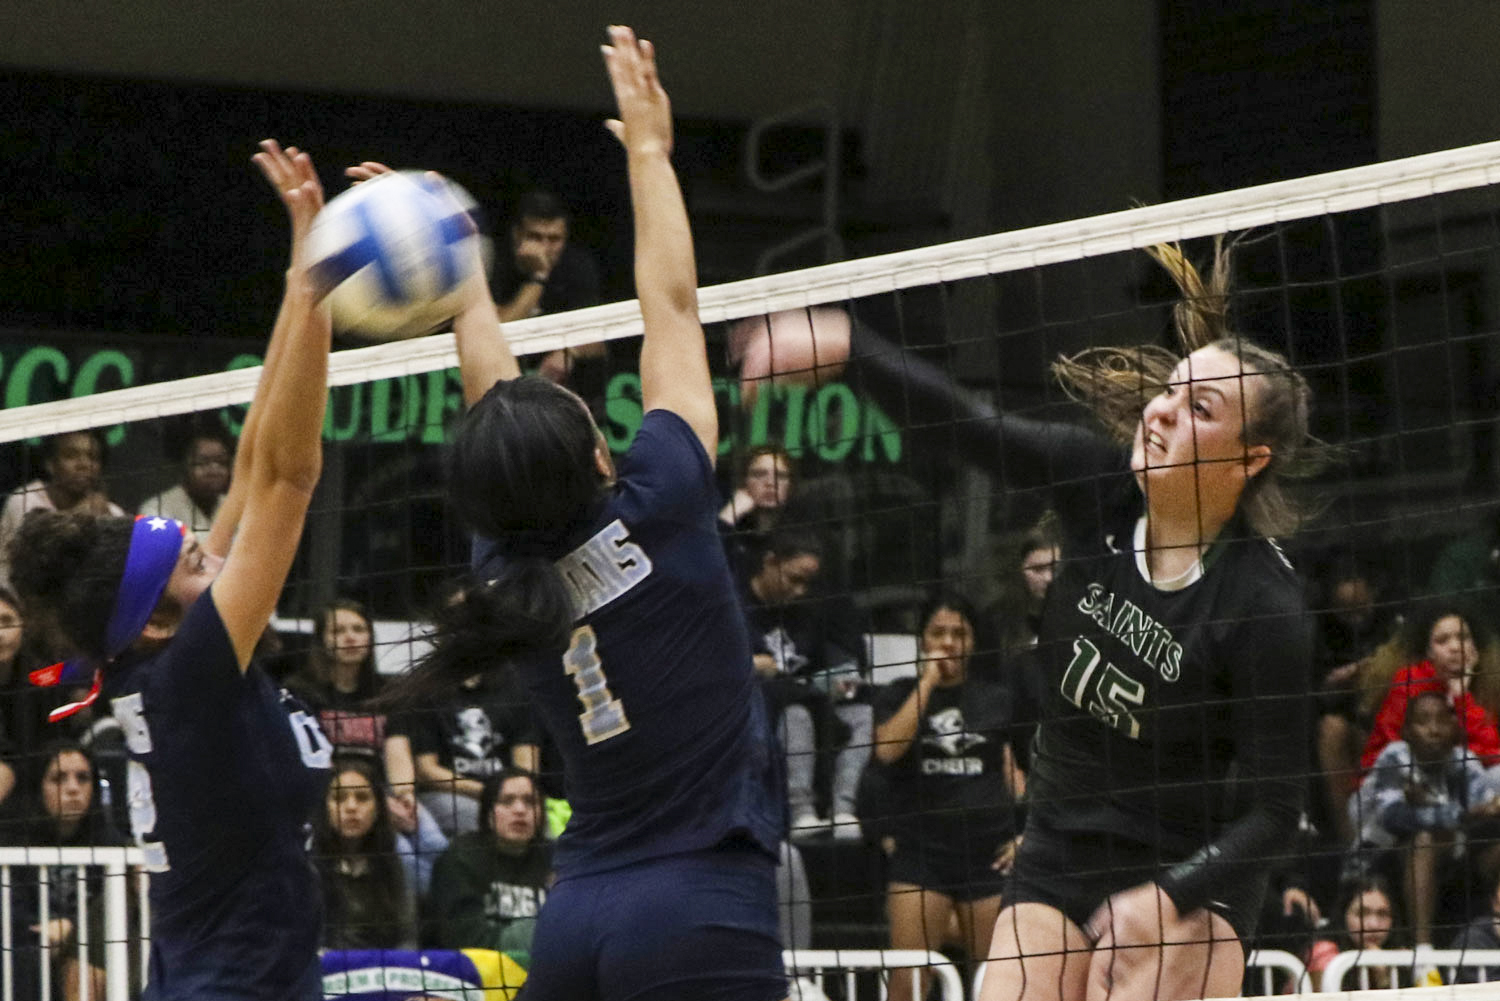 Thais Vieira slams the ball down for two points, helping the Lady Saints win the Region VI Championship. The sophomore middle blocker from Brazil is on her second Regional championship team.